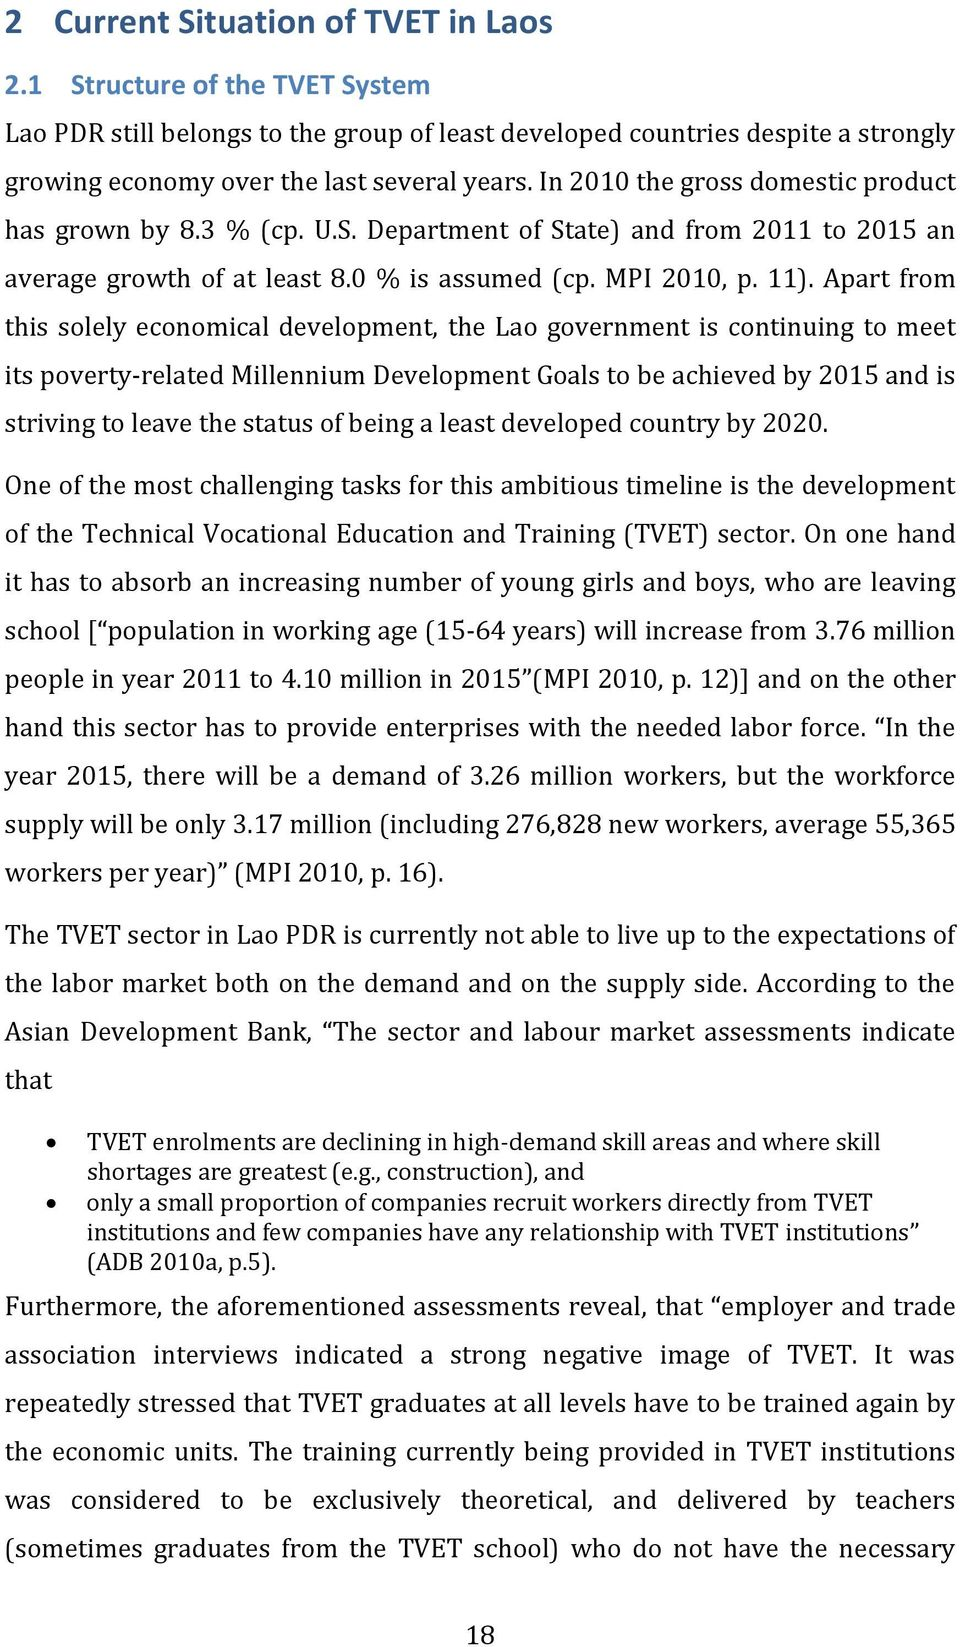 Apart from this solely economical development, the Lao government is continuing to meet its poverty-related Millennium Development Goals to be achieved by 2015 and is striving to leave the status of